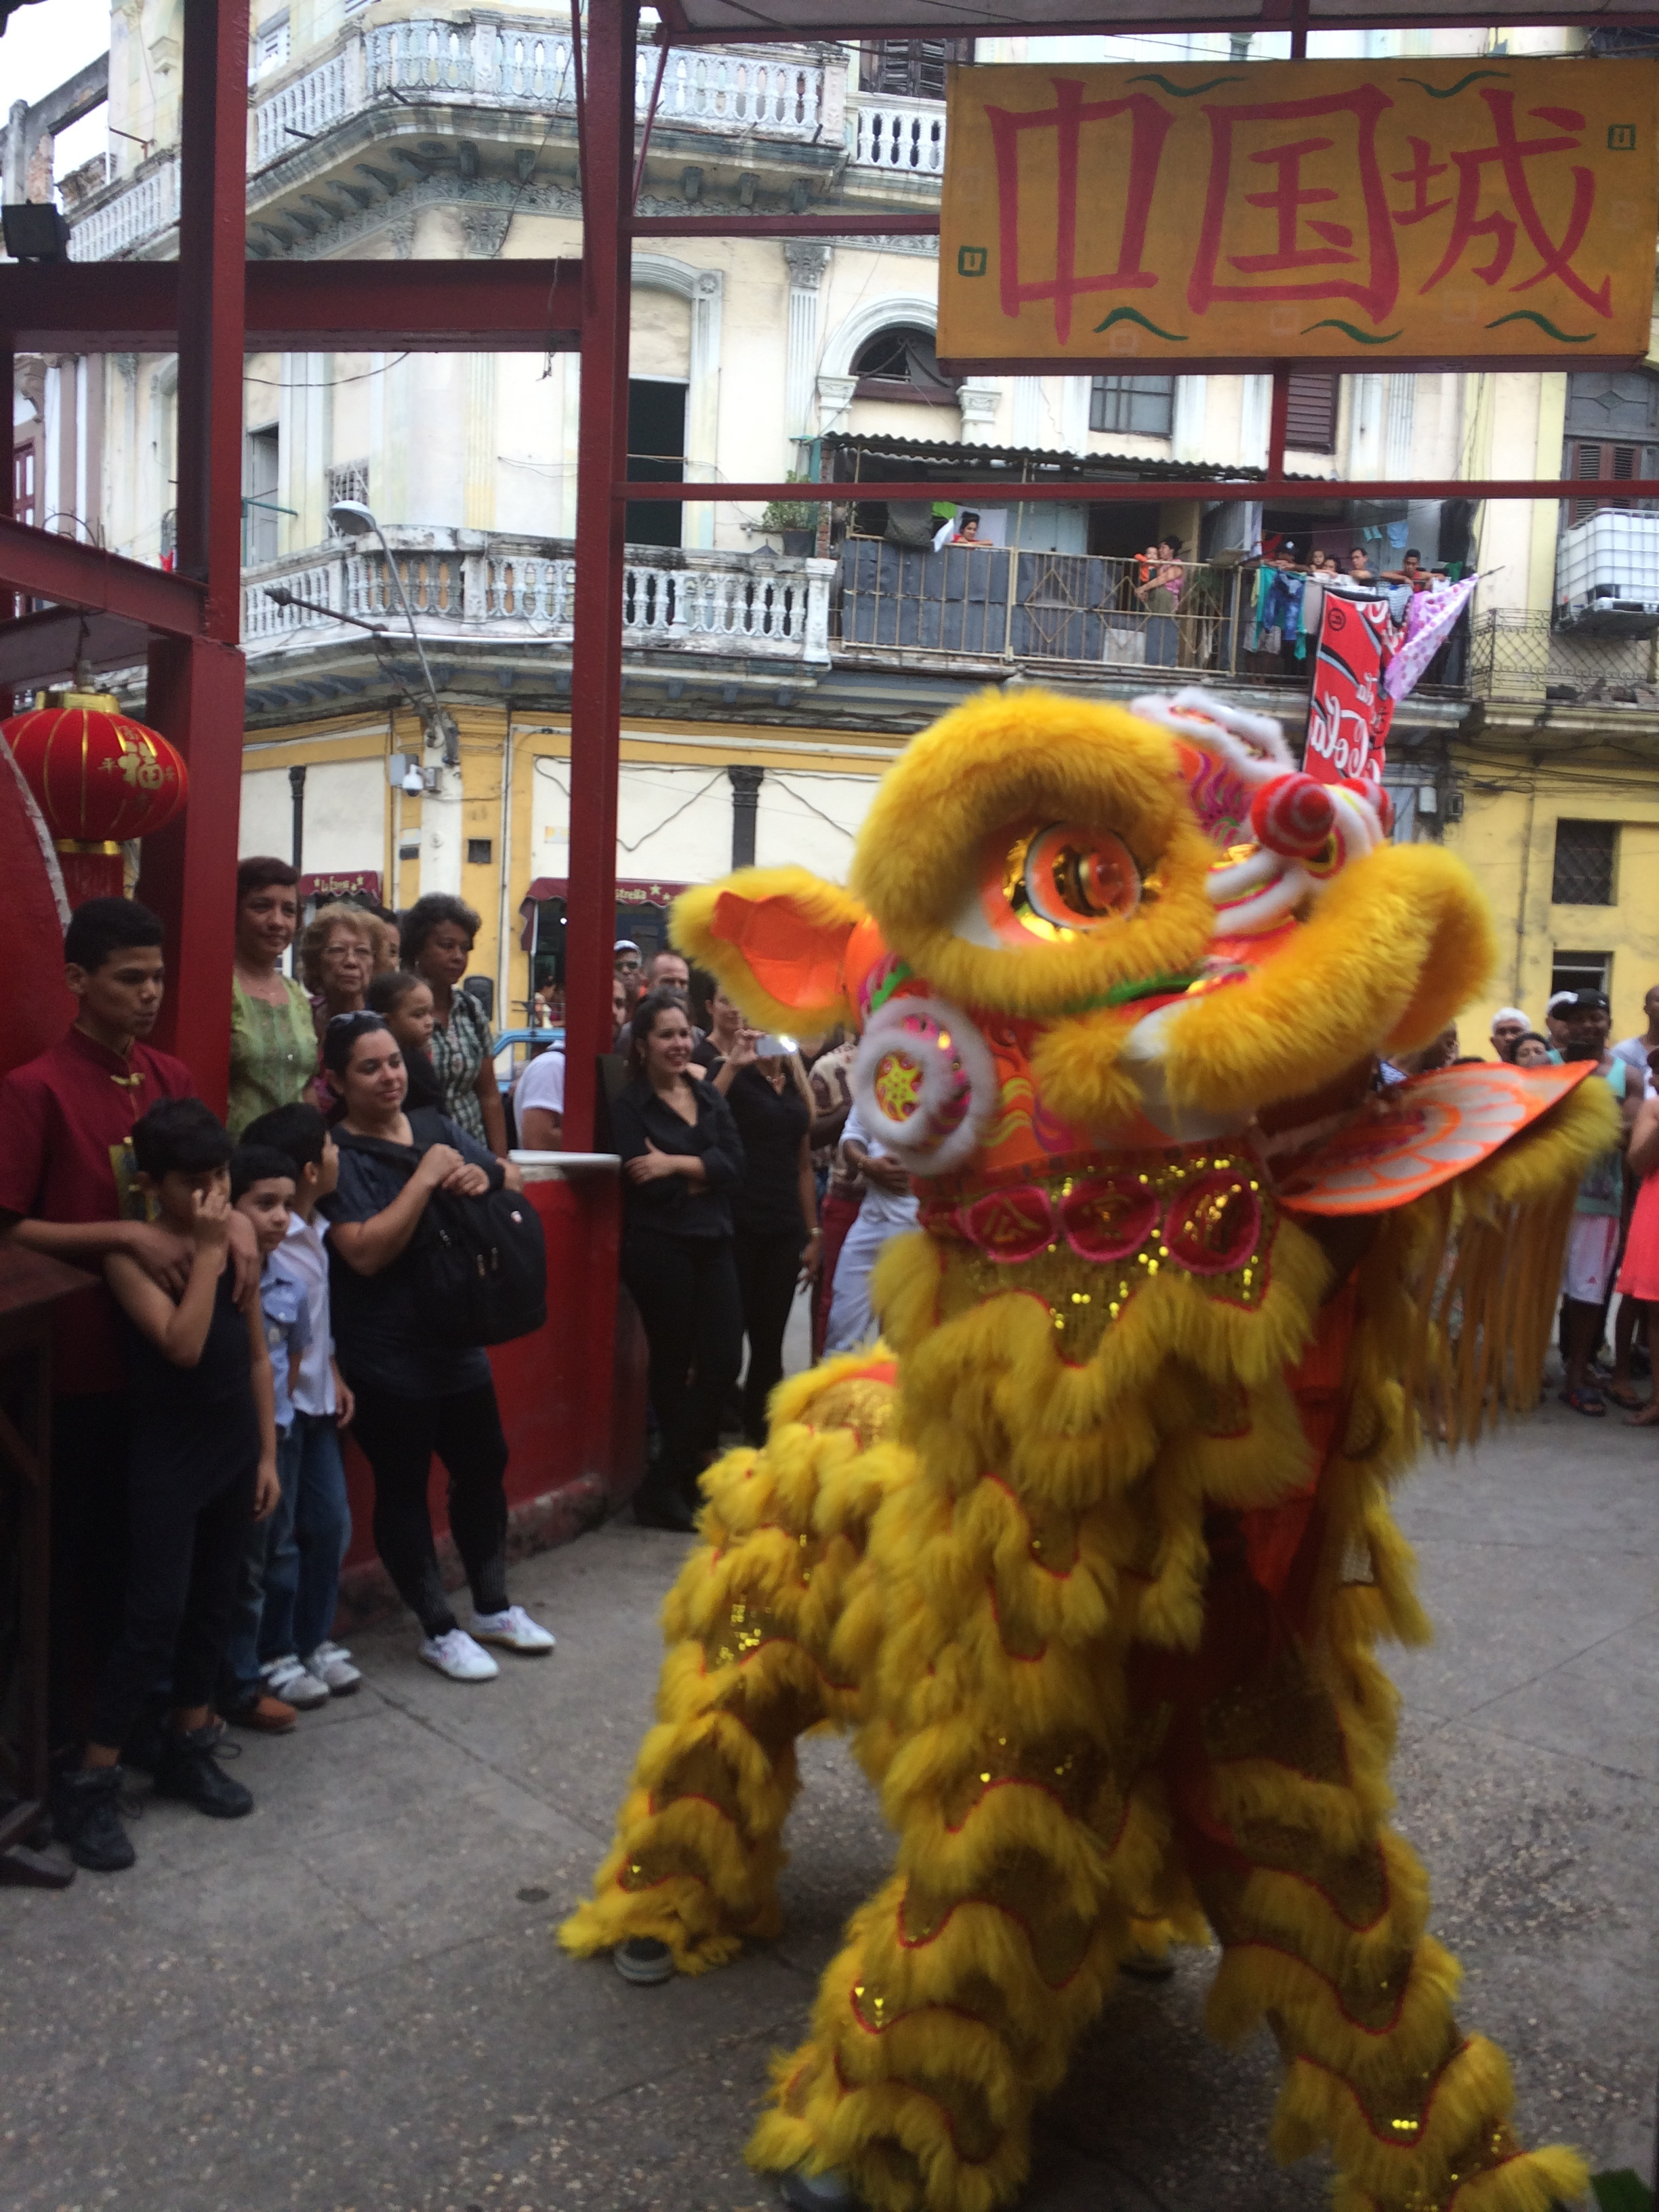 Cubans performing a lion dance to celebrate the Chinese New Year in Havana's Chinatown.